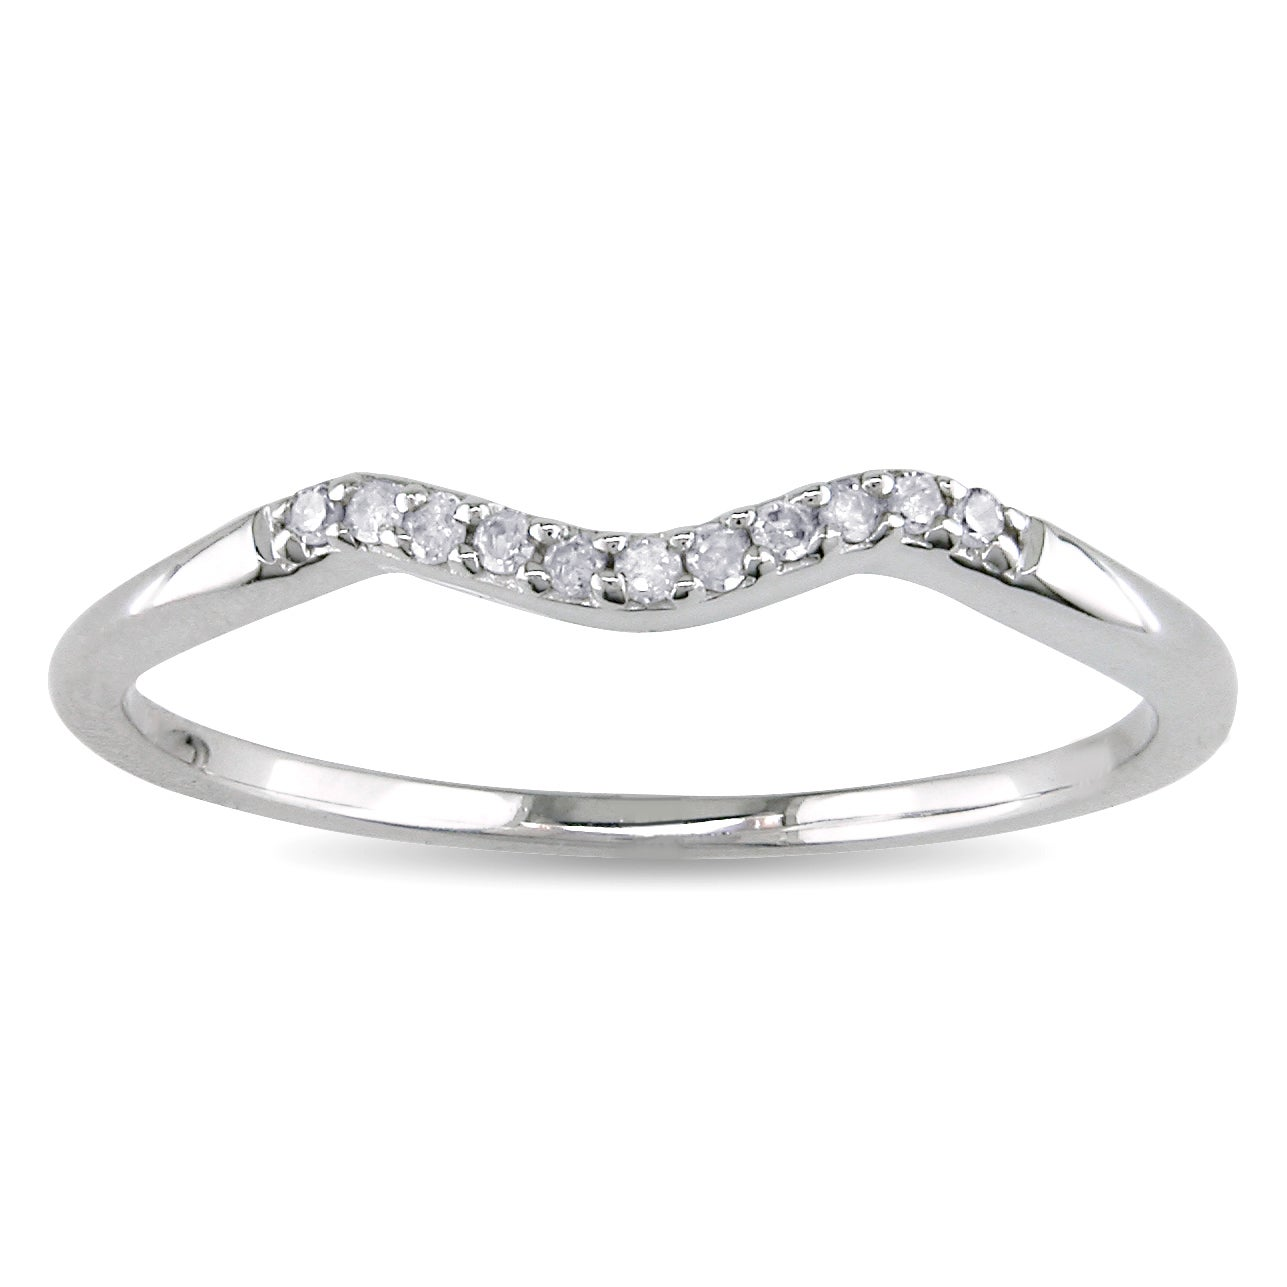 Haylee Jewels 10k White Gold Diamond Accent Curved Wedding Band Overstock S